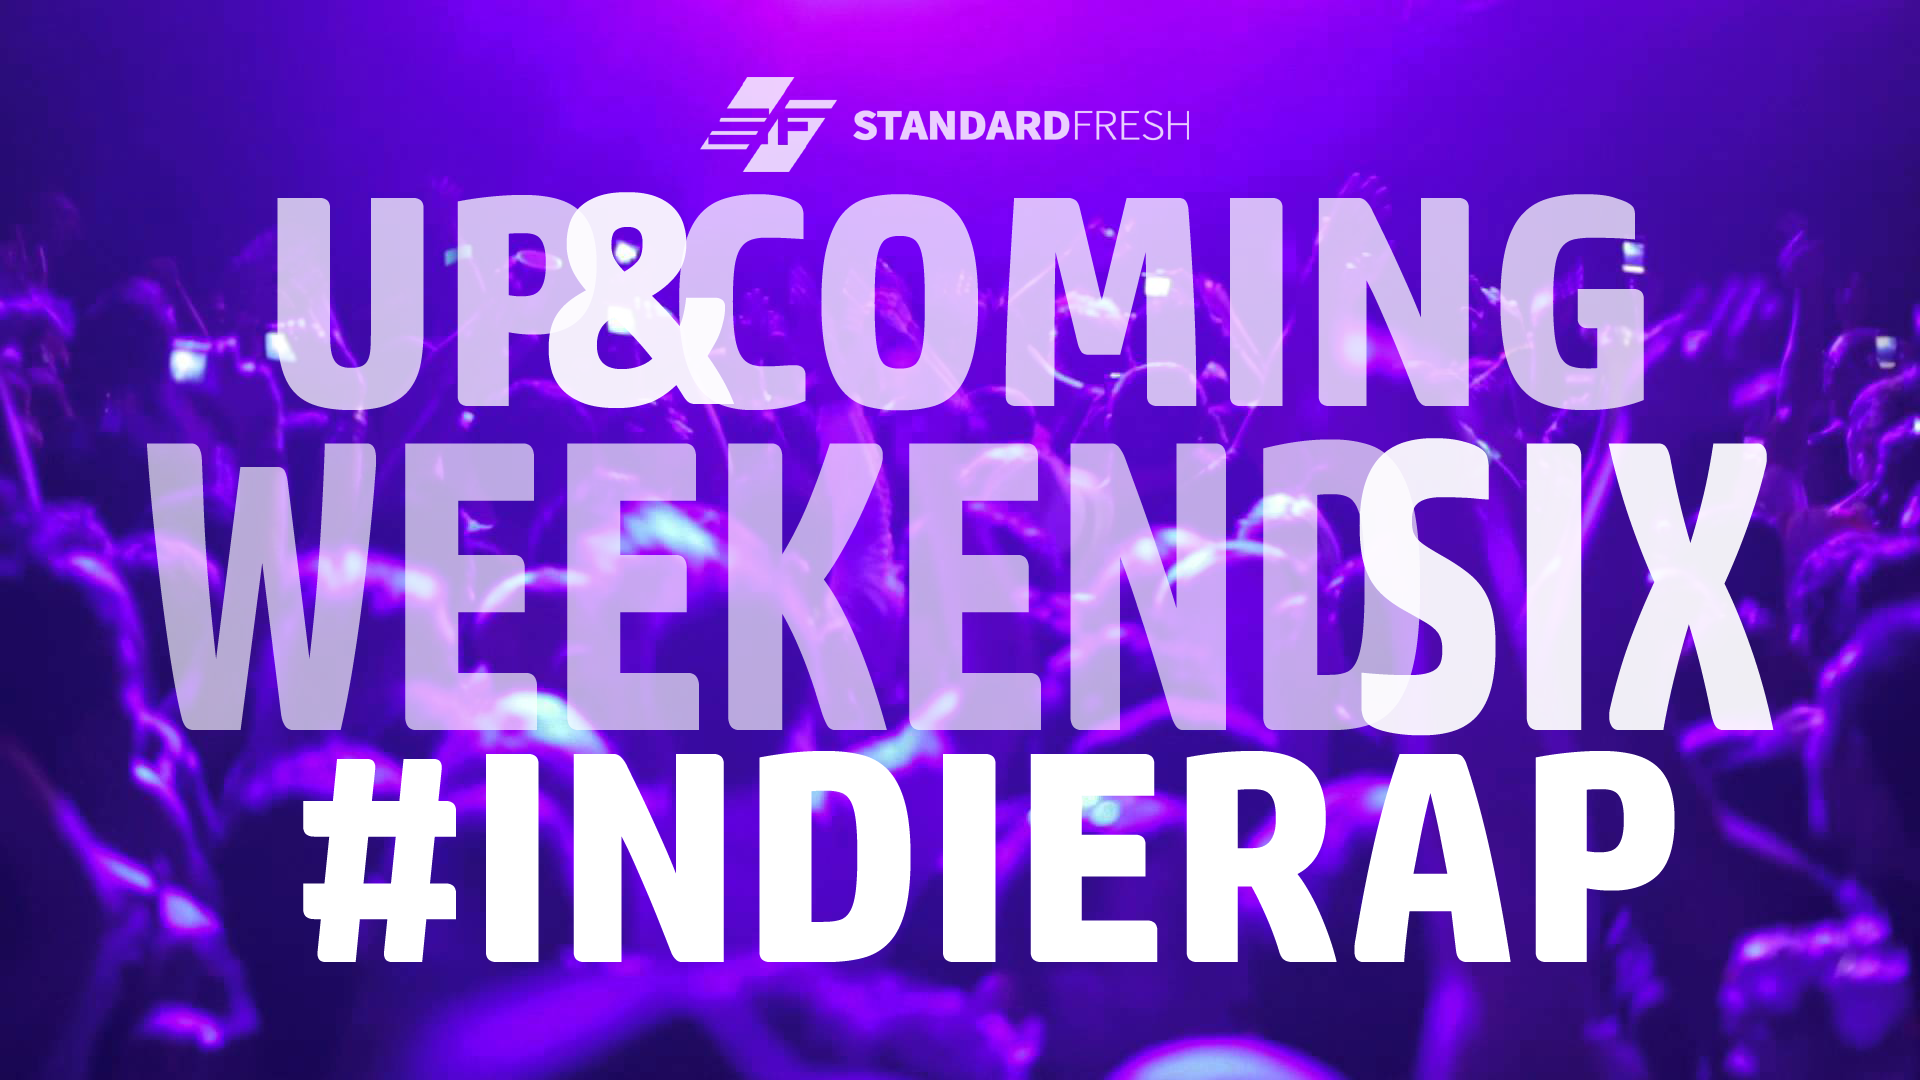 Up coming the weekend six indierap for New kid movies coming out this weekend